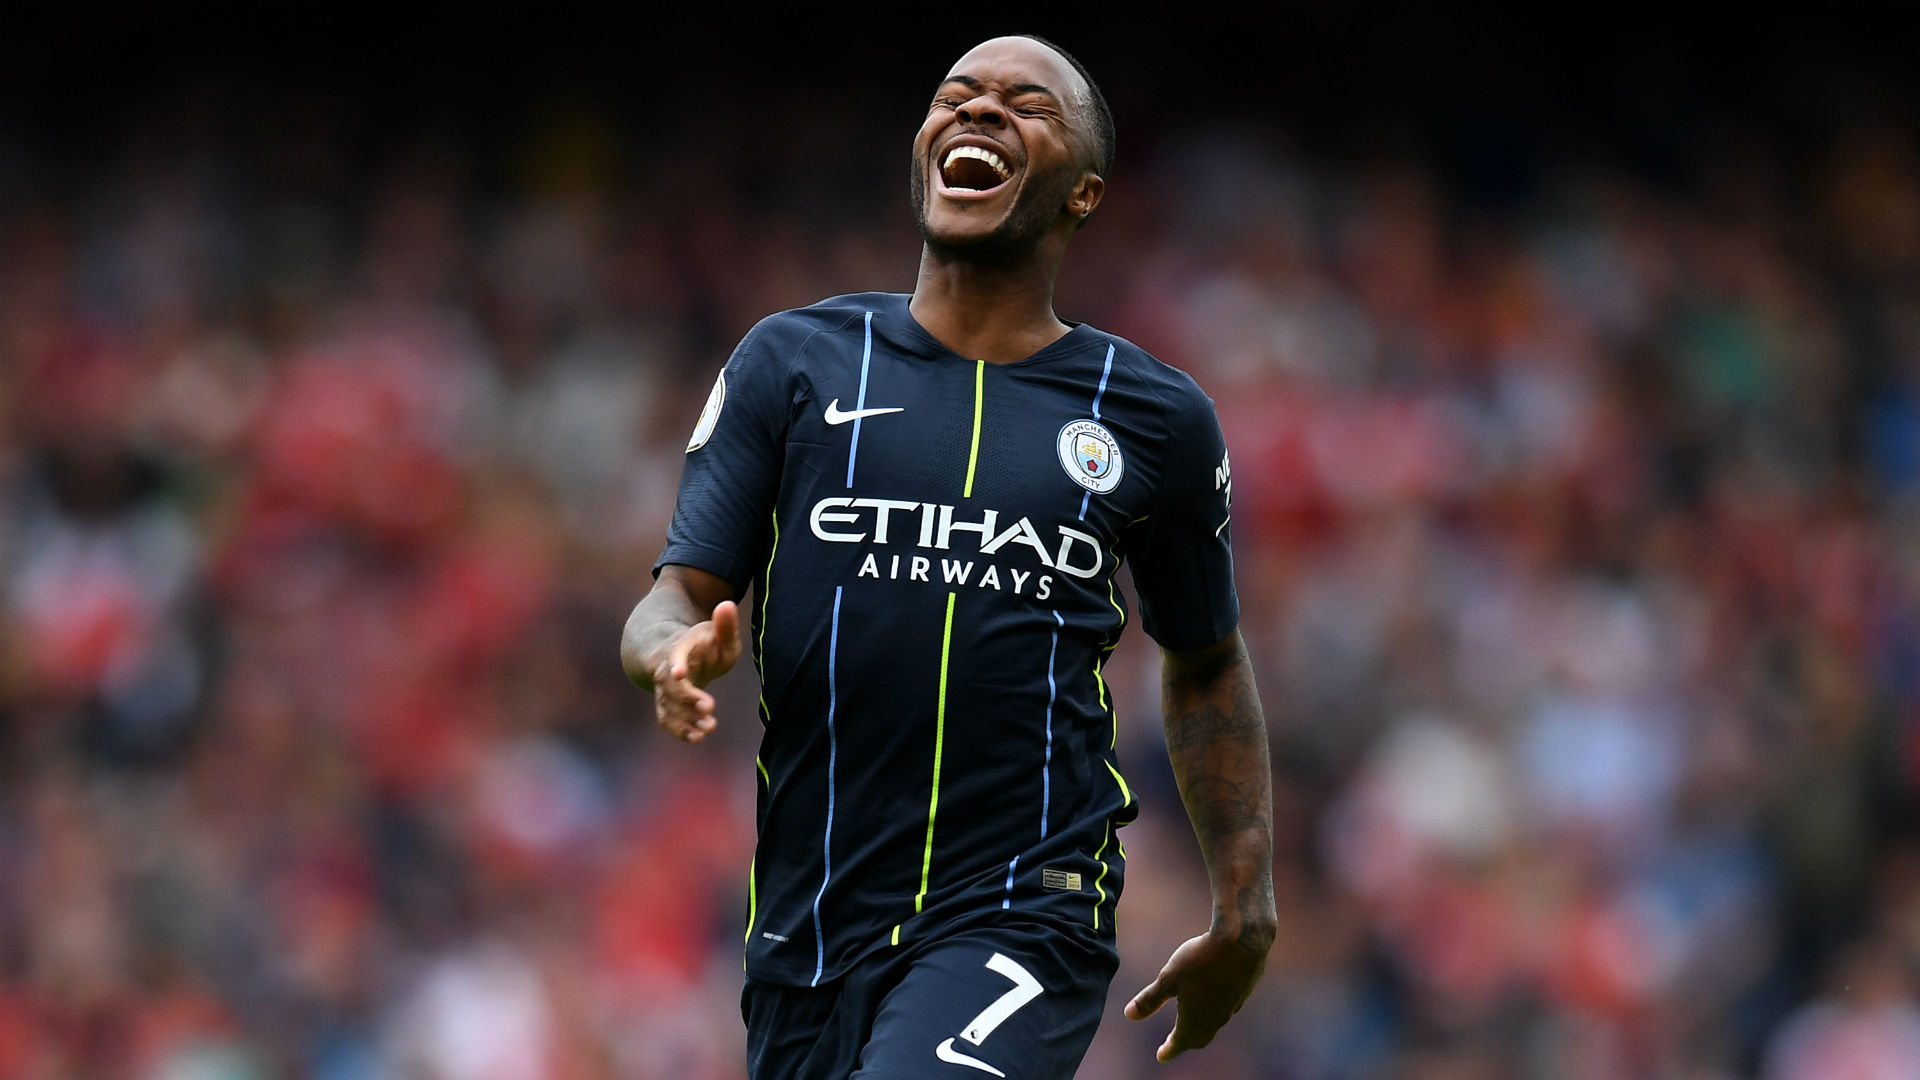 Sterling 2023: The best is yet to come, insists City and England star